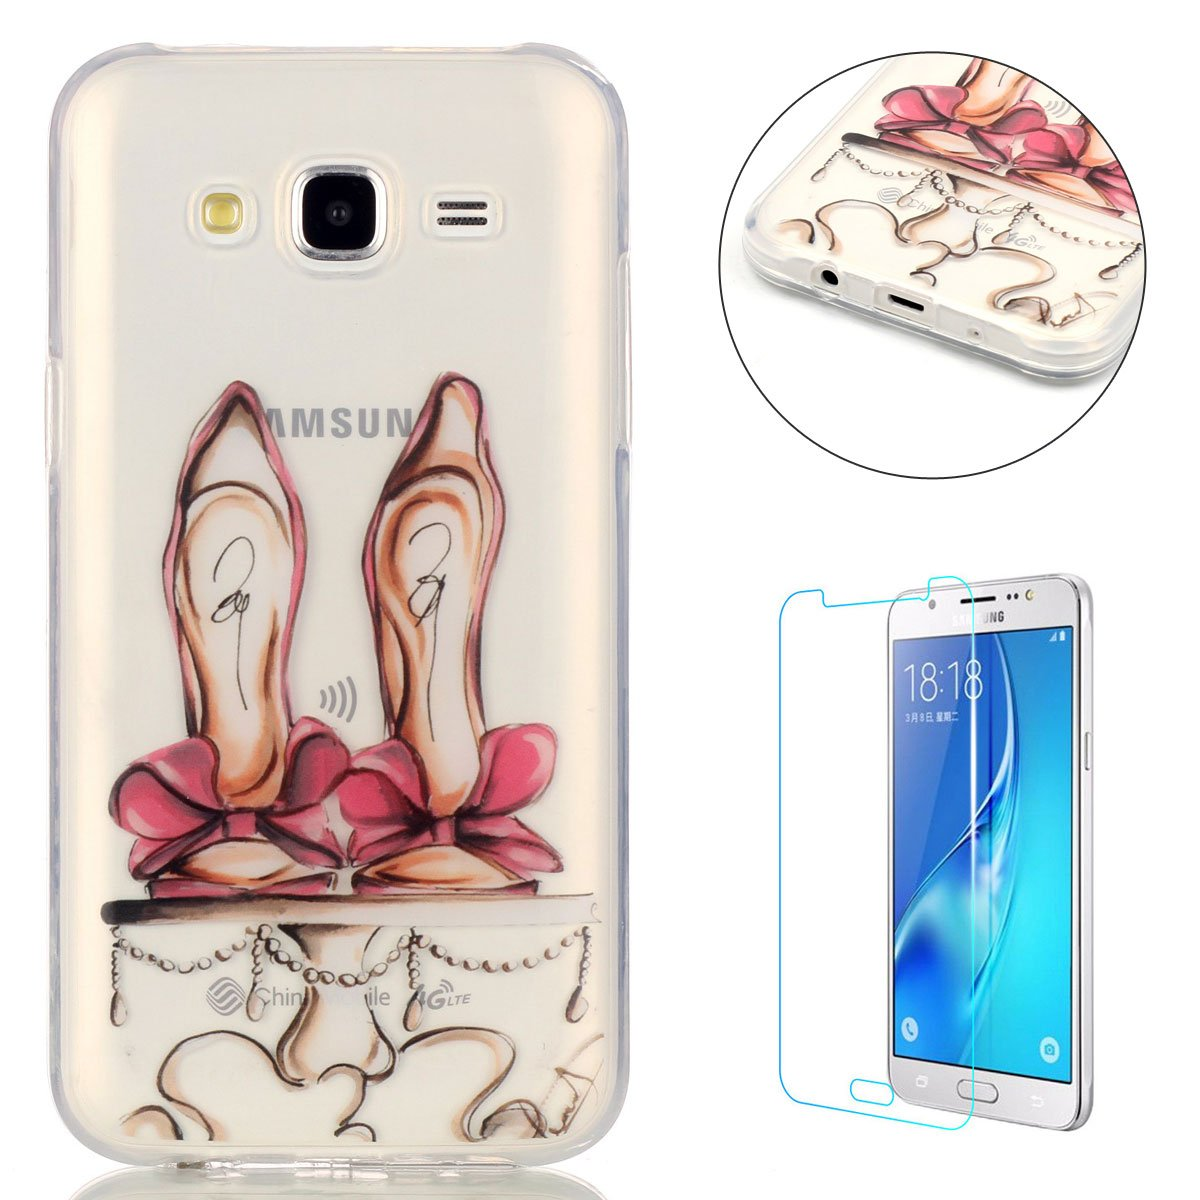 CaseHome For Samsung Galaxy J7 2015 Gel TPU Case Shock Proof Durable [Free Screen Protector]